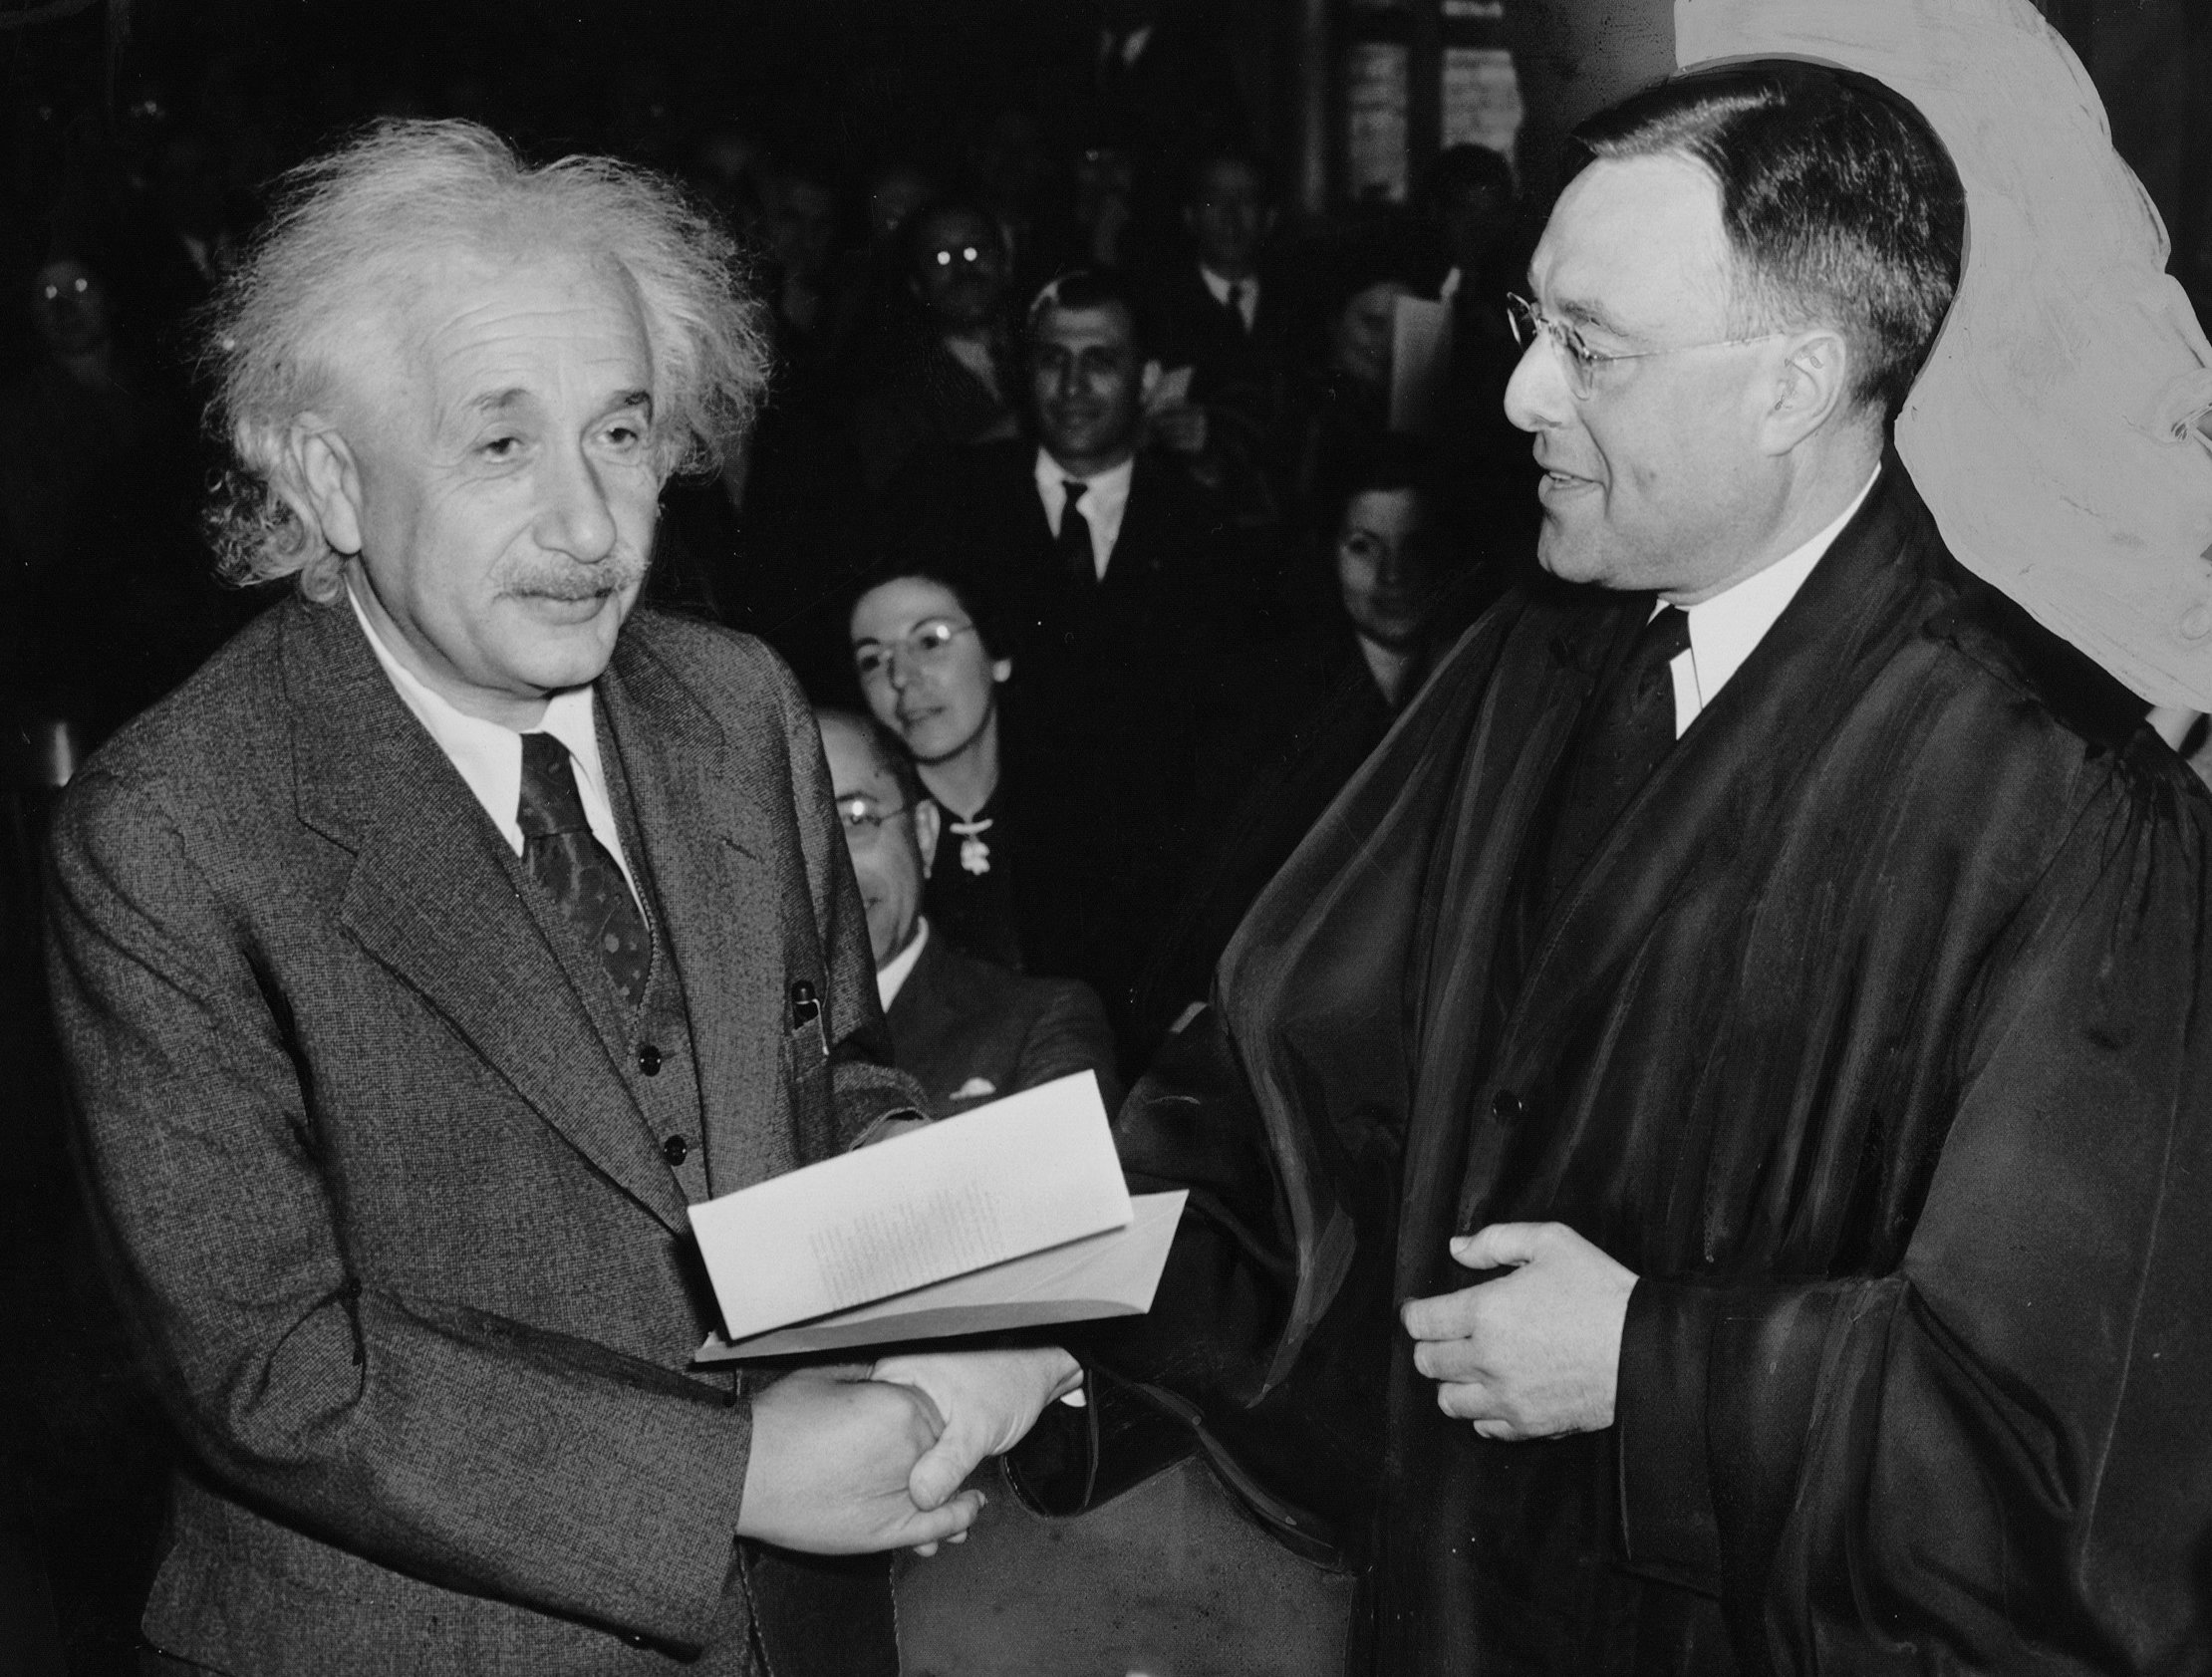 albert einstein writework english receiving from judge his certificate of american citizenship deutsch erhaumllt von richter